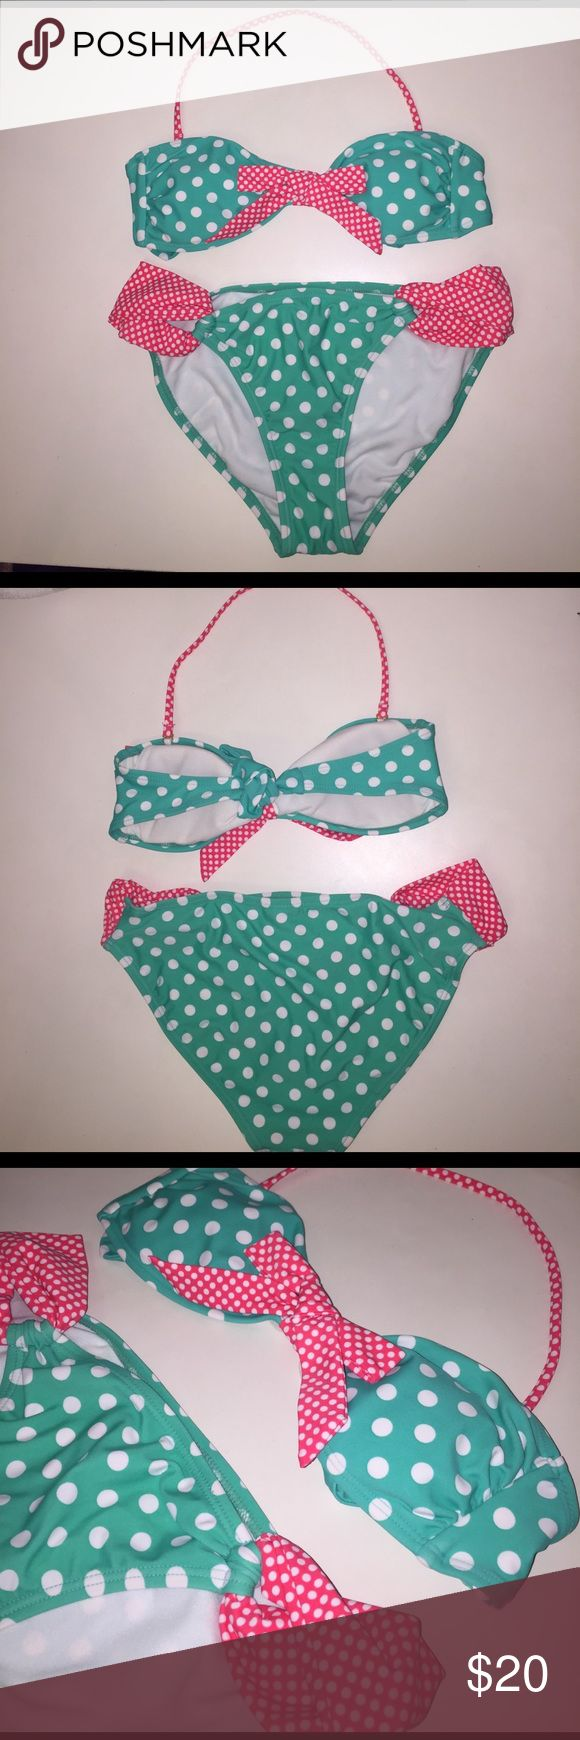 Polka Dot Bikini - Bandeau Top & Bikini Bottom This adorable polka dot bikini comes at the perfect time for Spring Break! The bandeau top can we be worn strapless or halter, has removable padding, and is tied at the back. No underwire. The bikini style bottom has peep holes at the hip for some peek-a-boo flair. Never worn, all tags still attached! Xhilaration Swim Bikinis